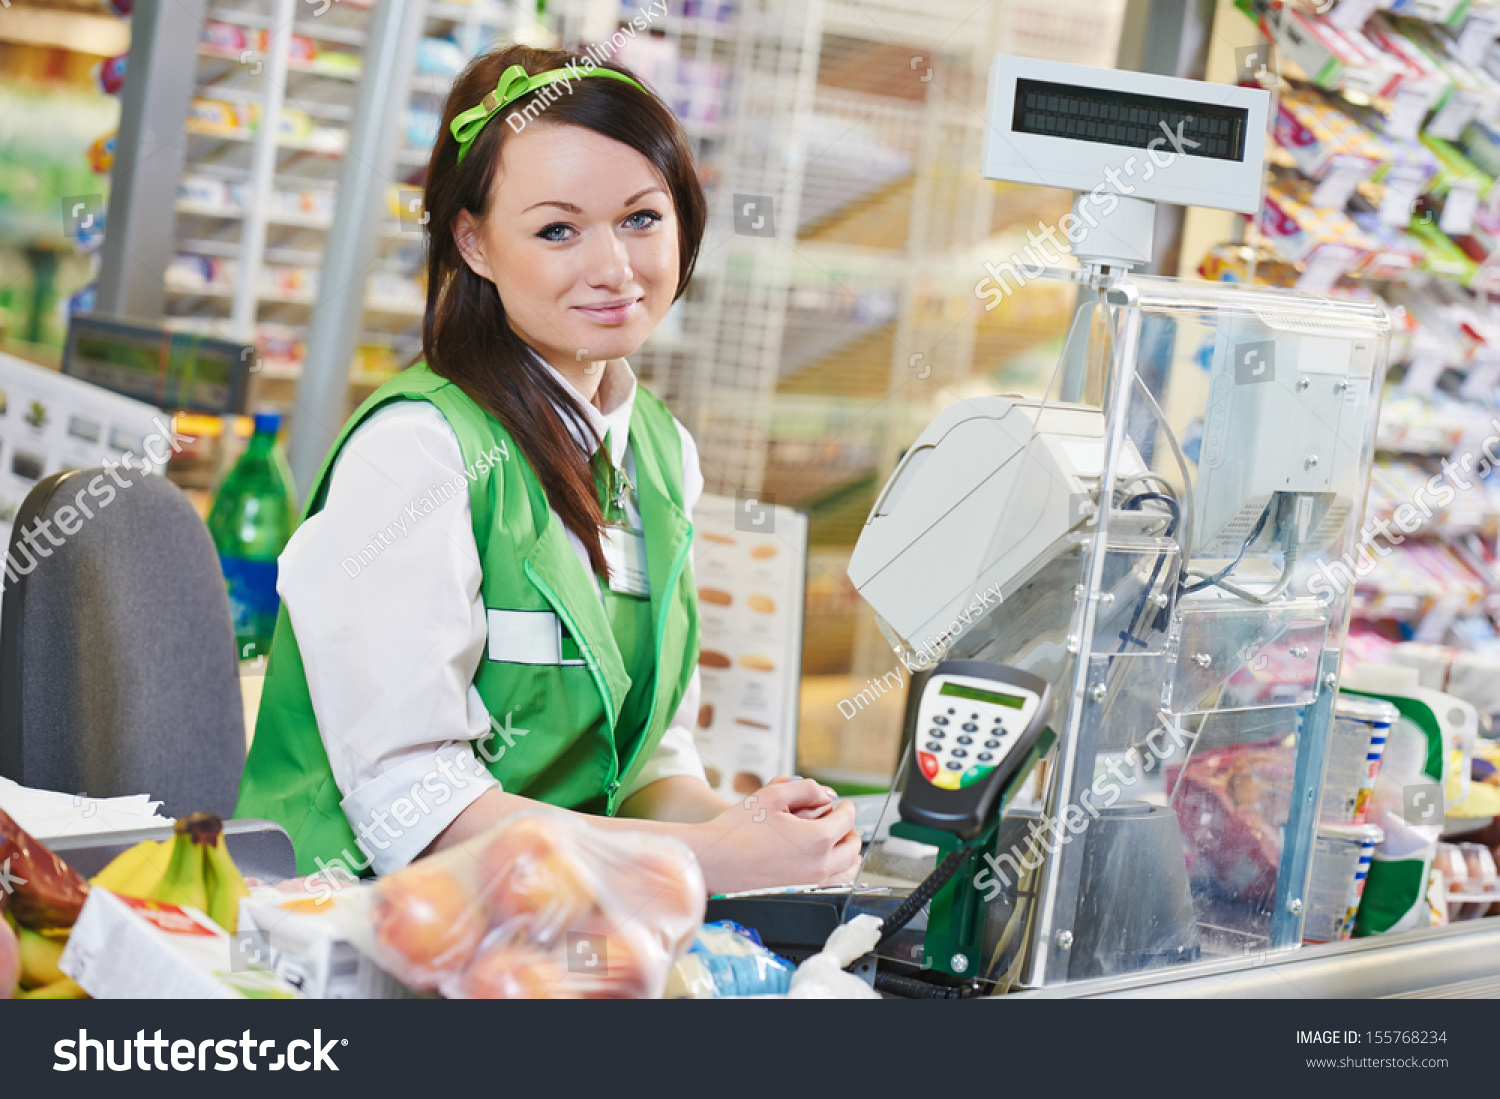 portrait s assistant cashdesk worker supermarket stock photo portrait of s assistant or cashdesk worker in supermarket store